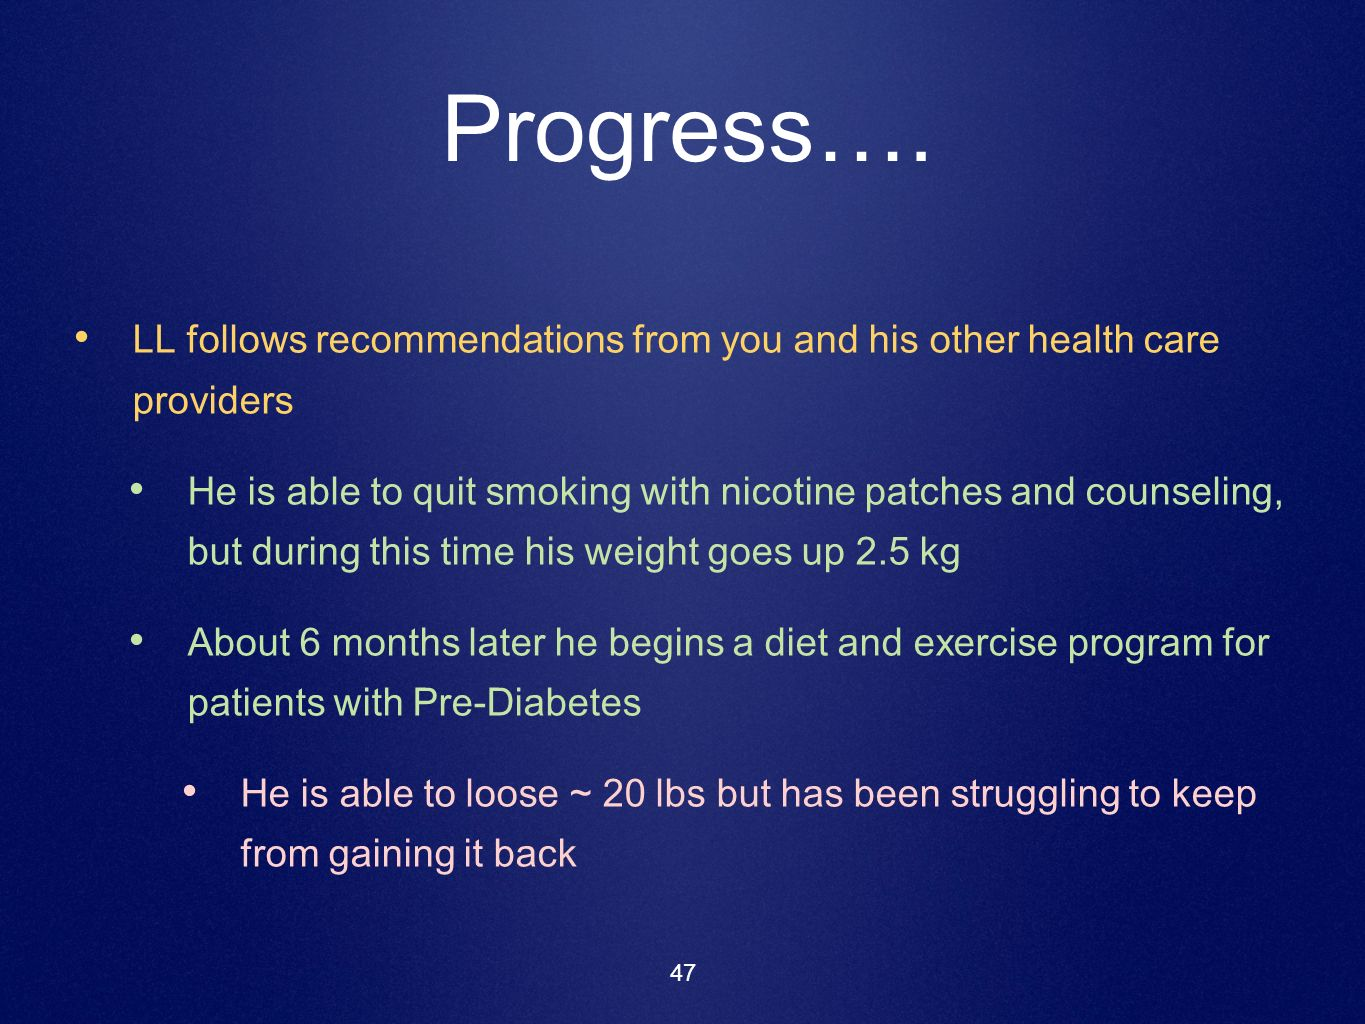 Progress…. LL follows recommendations from you and his other health care providers.